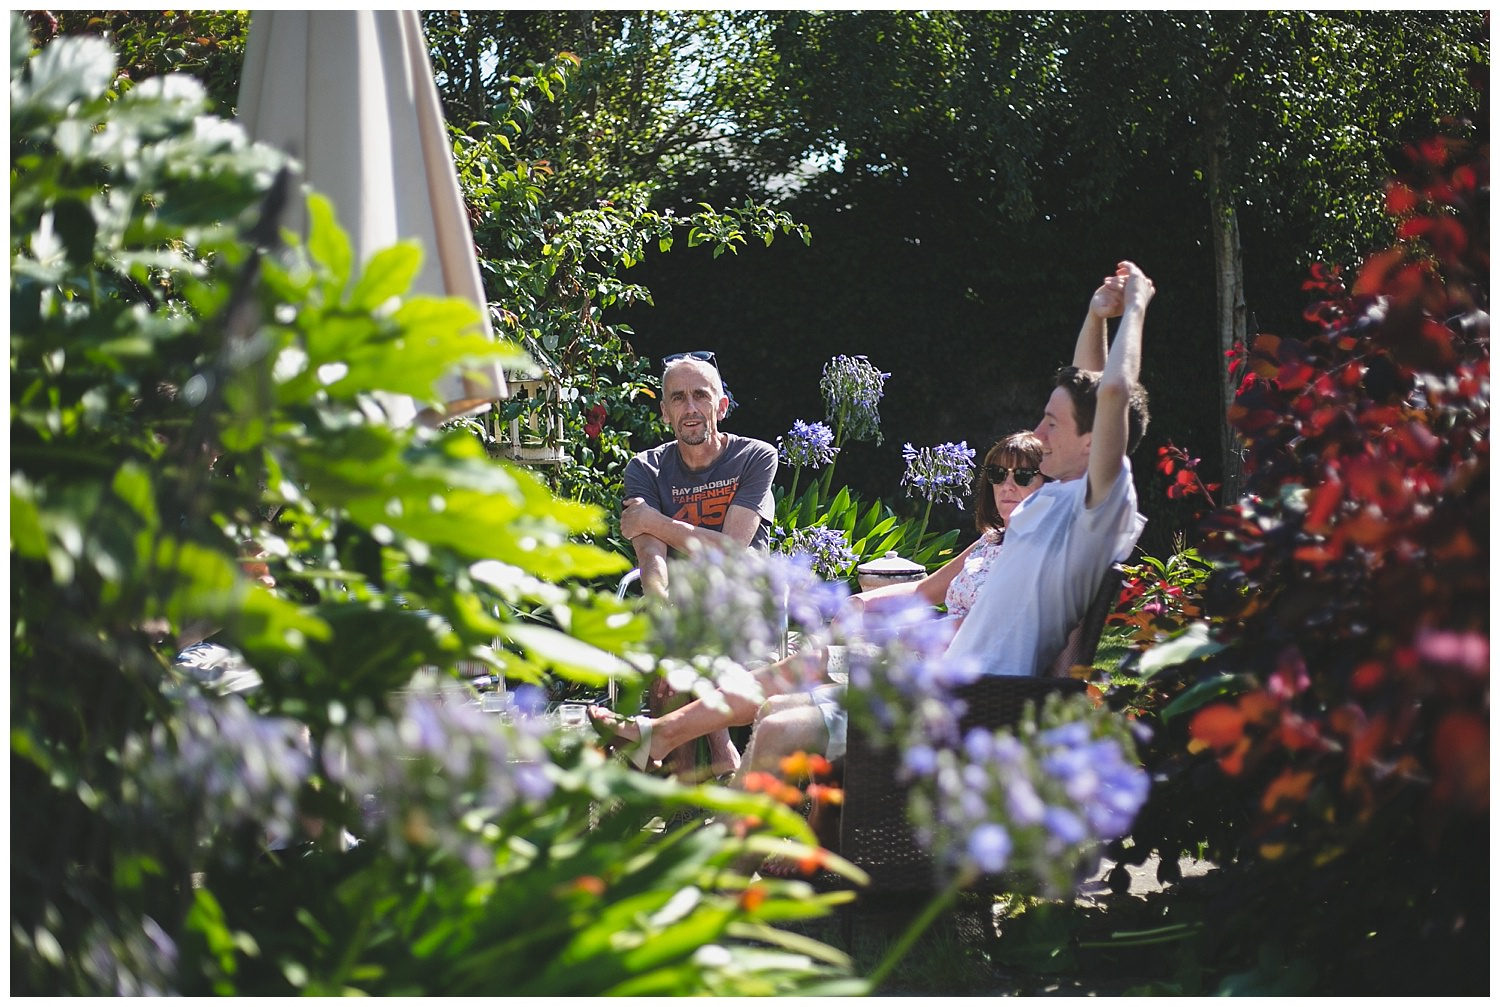 Candid photographs of family in garden